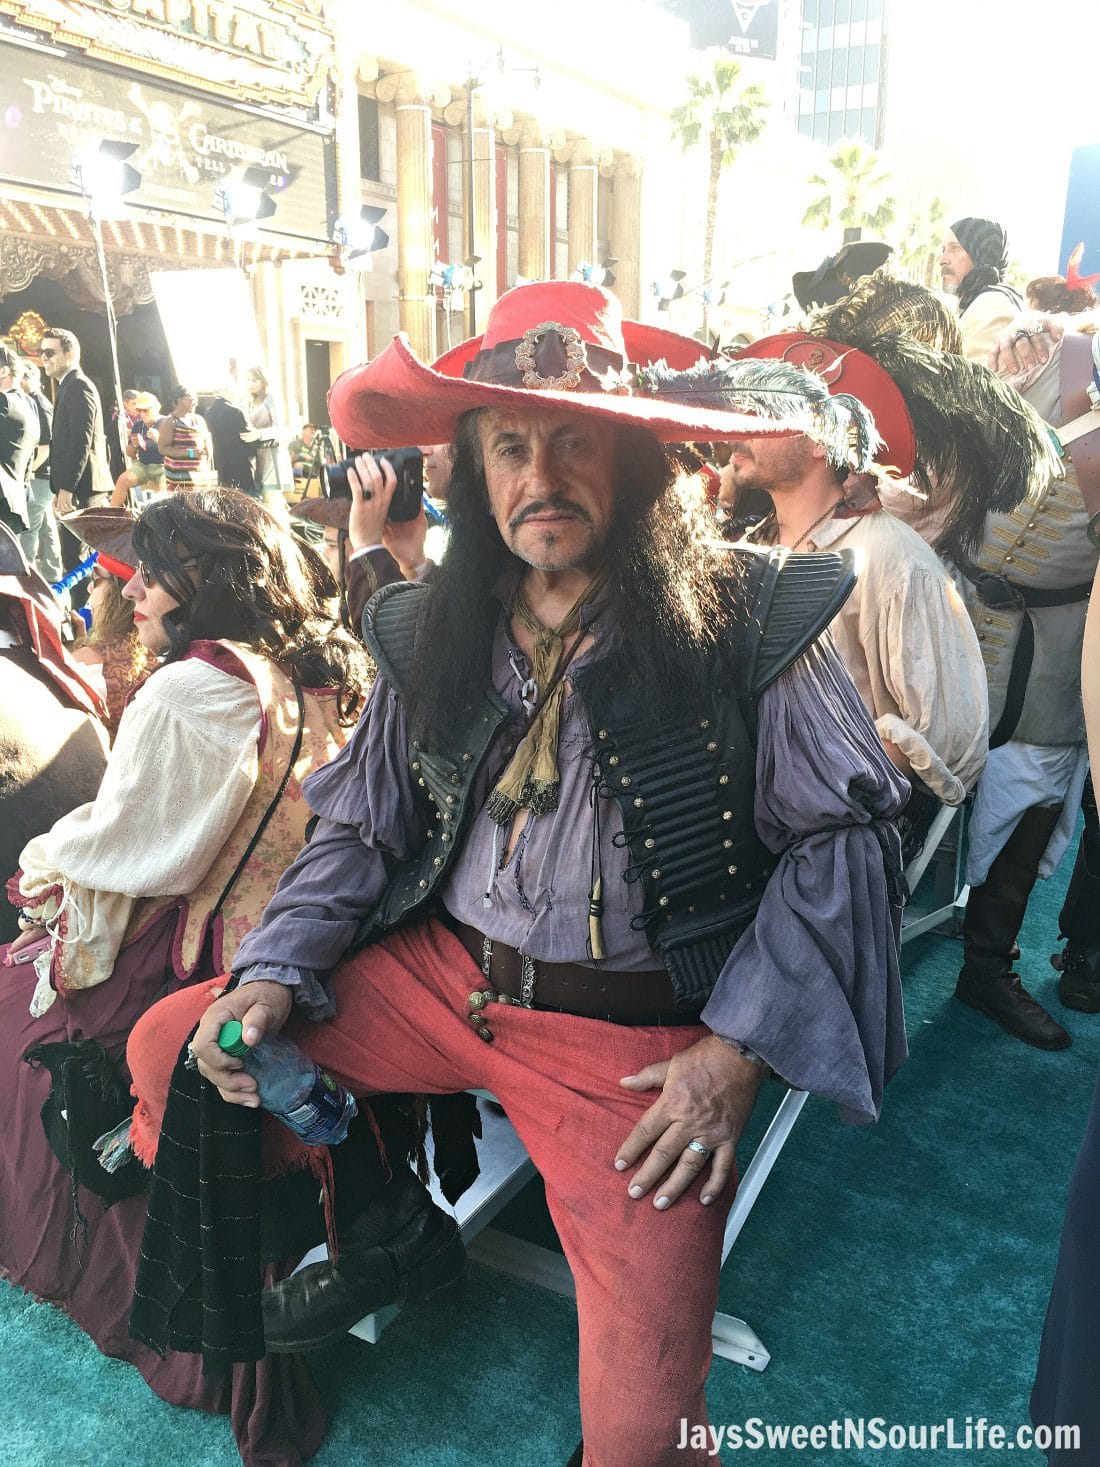 Follow along my high sea's adventure at the Pirates of the Caribbean: Dead Men Tell No Tales premiere in Los Angeles, California. Attend a red carpet premiere in Hollywood with me, and checkout all the pirate themed fun we had at the premiere party.